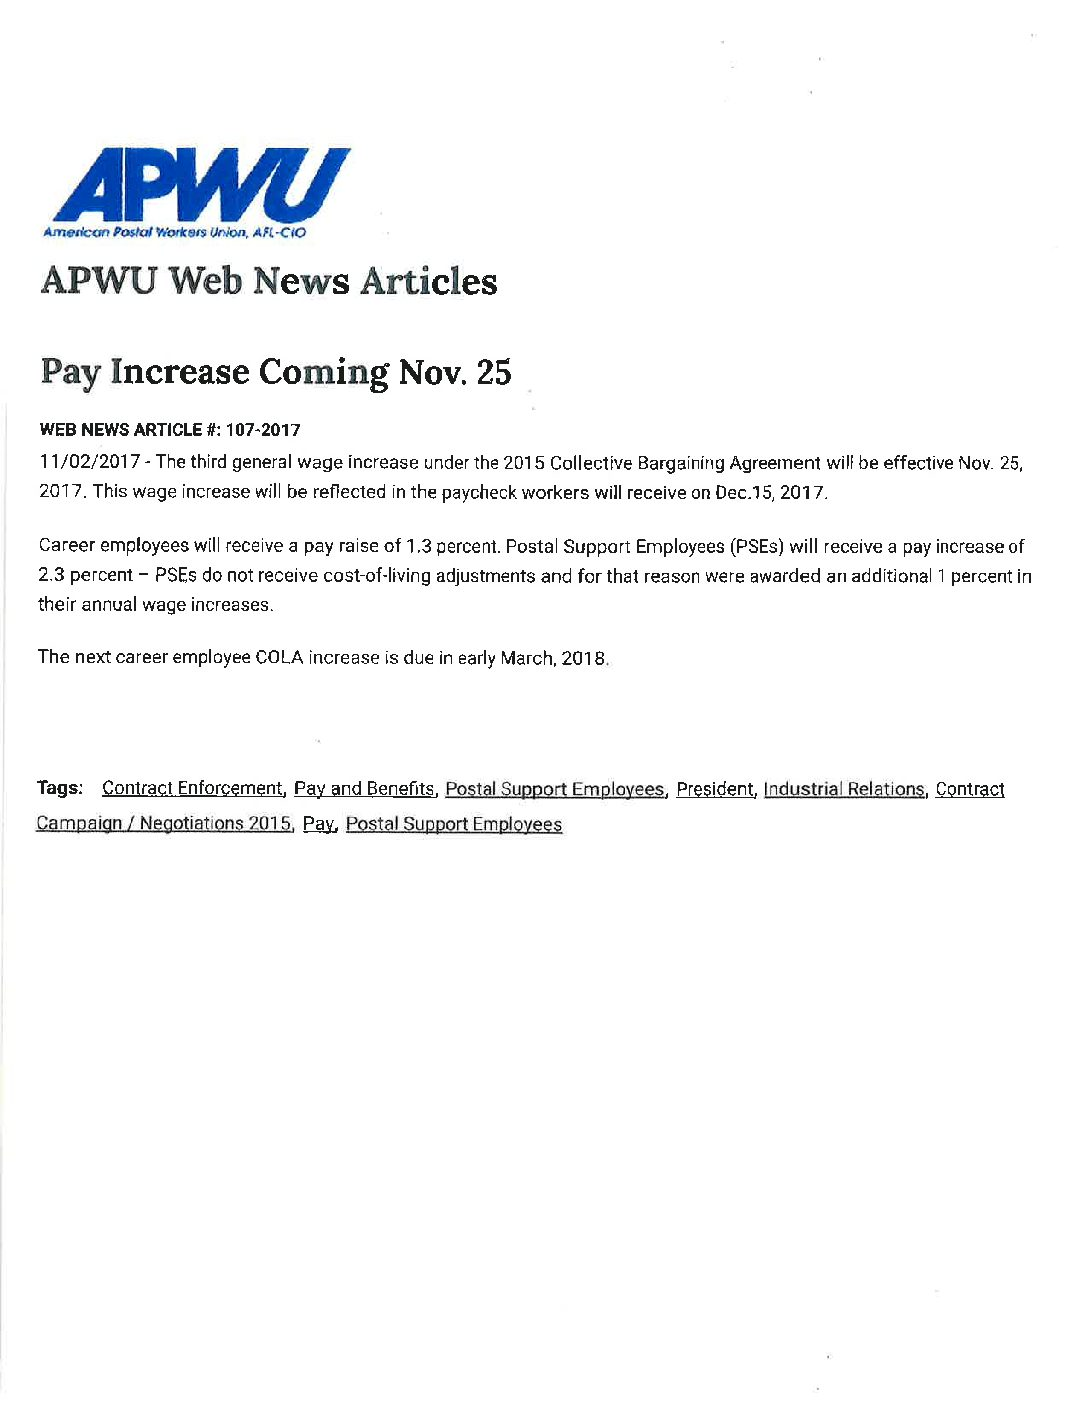 Pay Increases In November